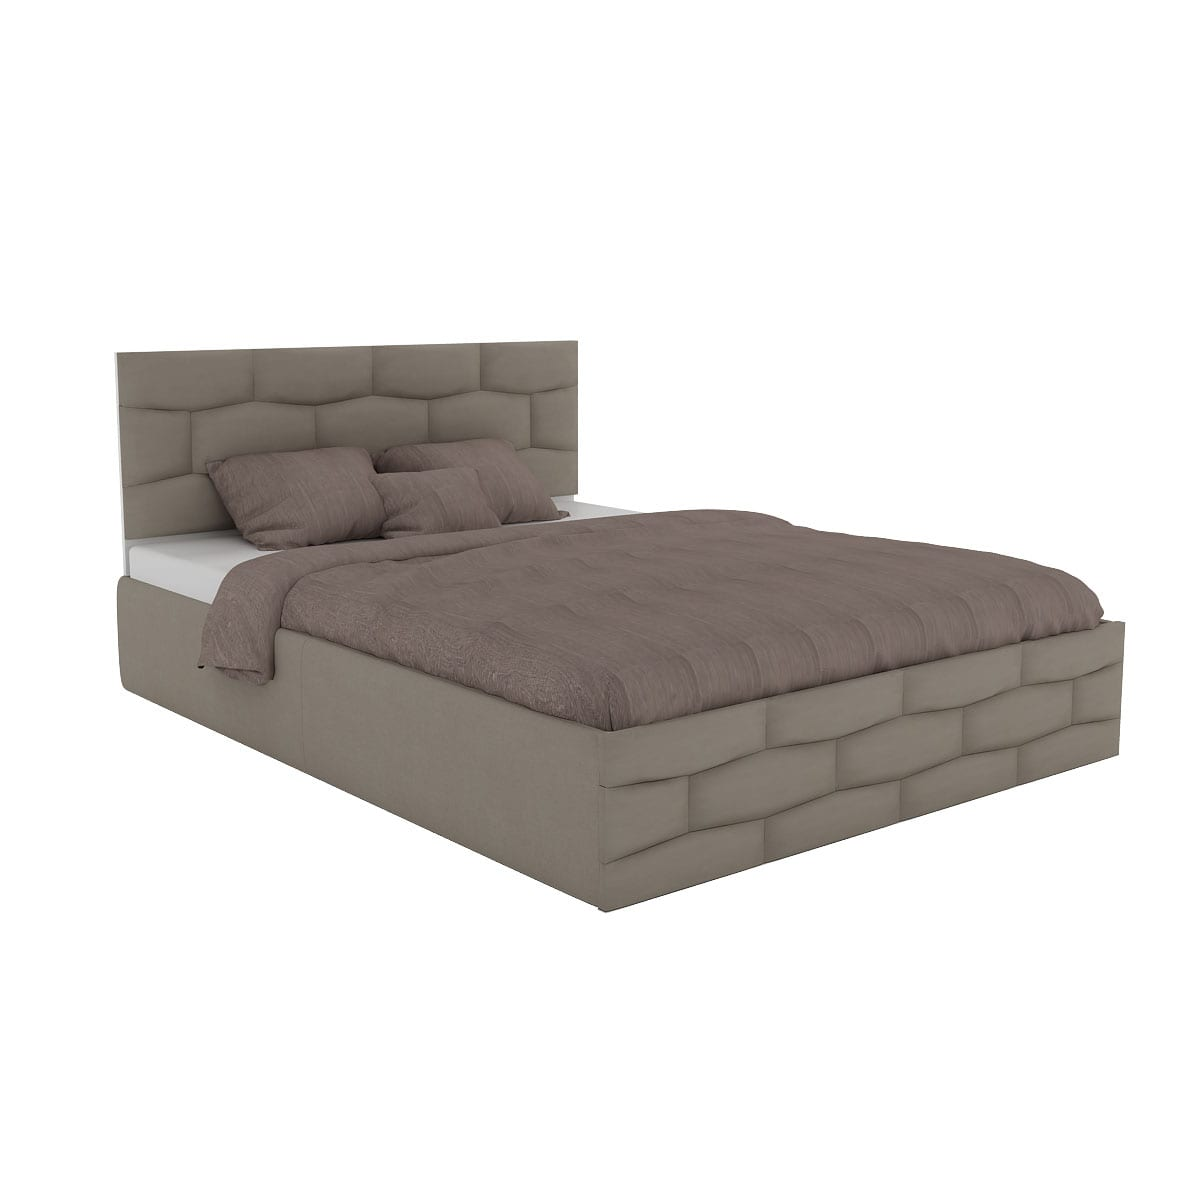 Hexa Cut Queen Size Upholstery Bed with Hydraulic Storage